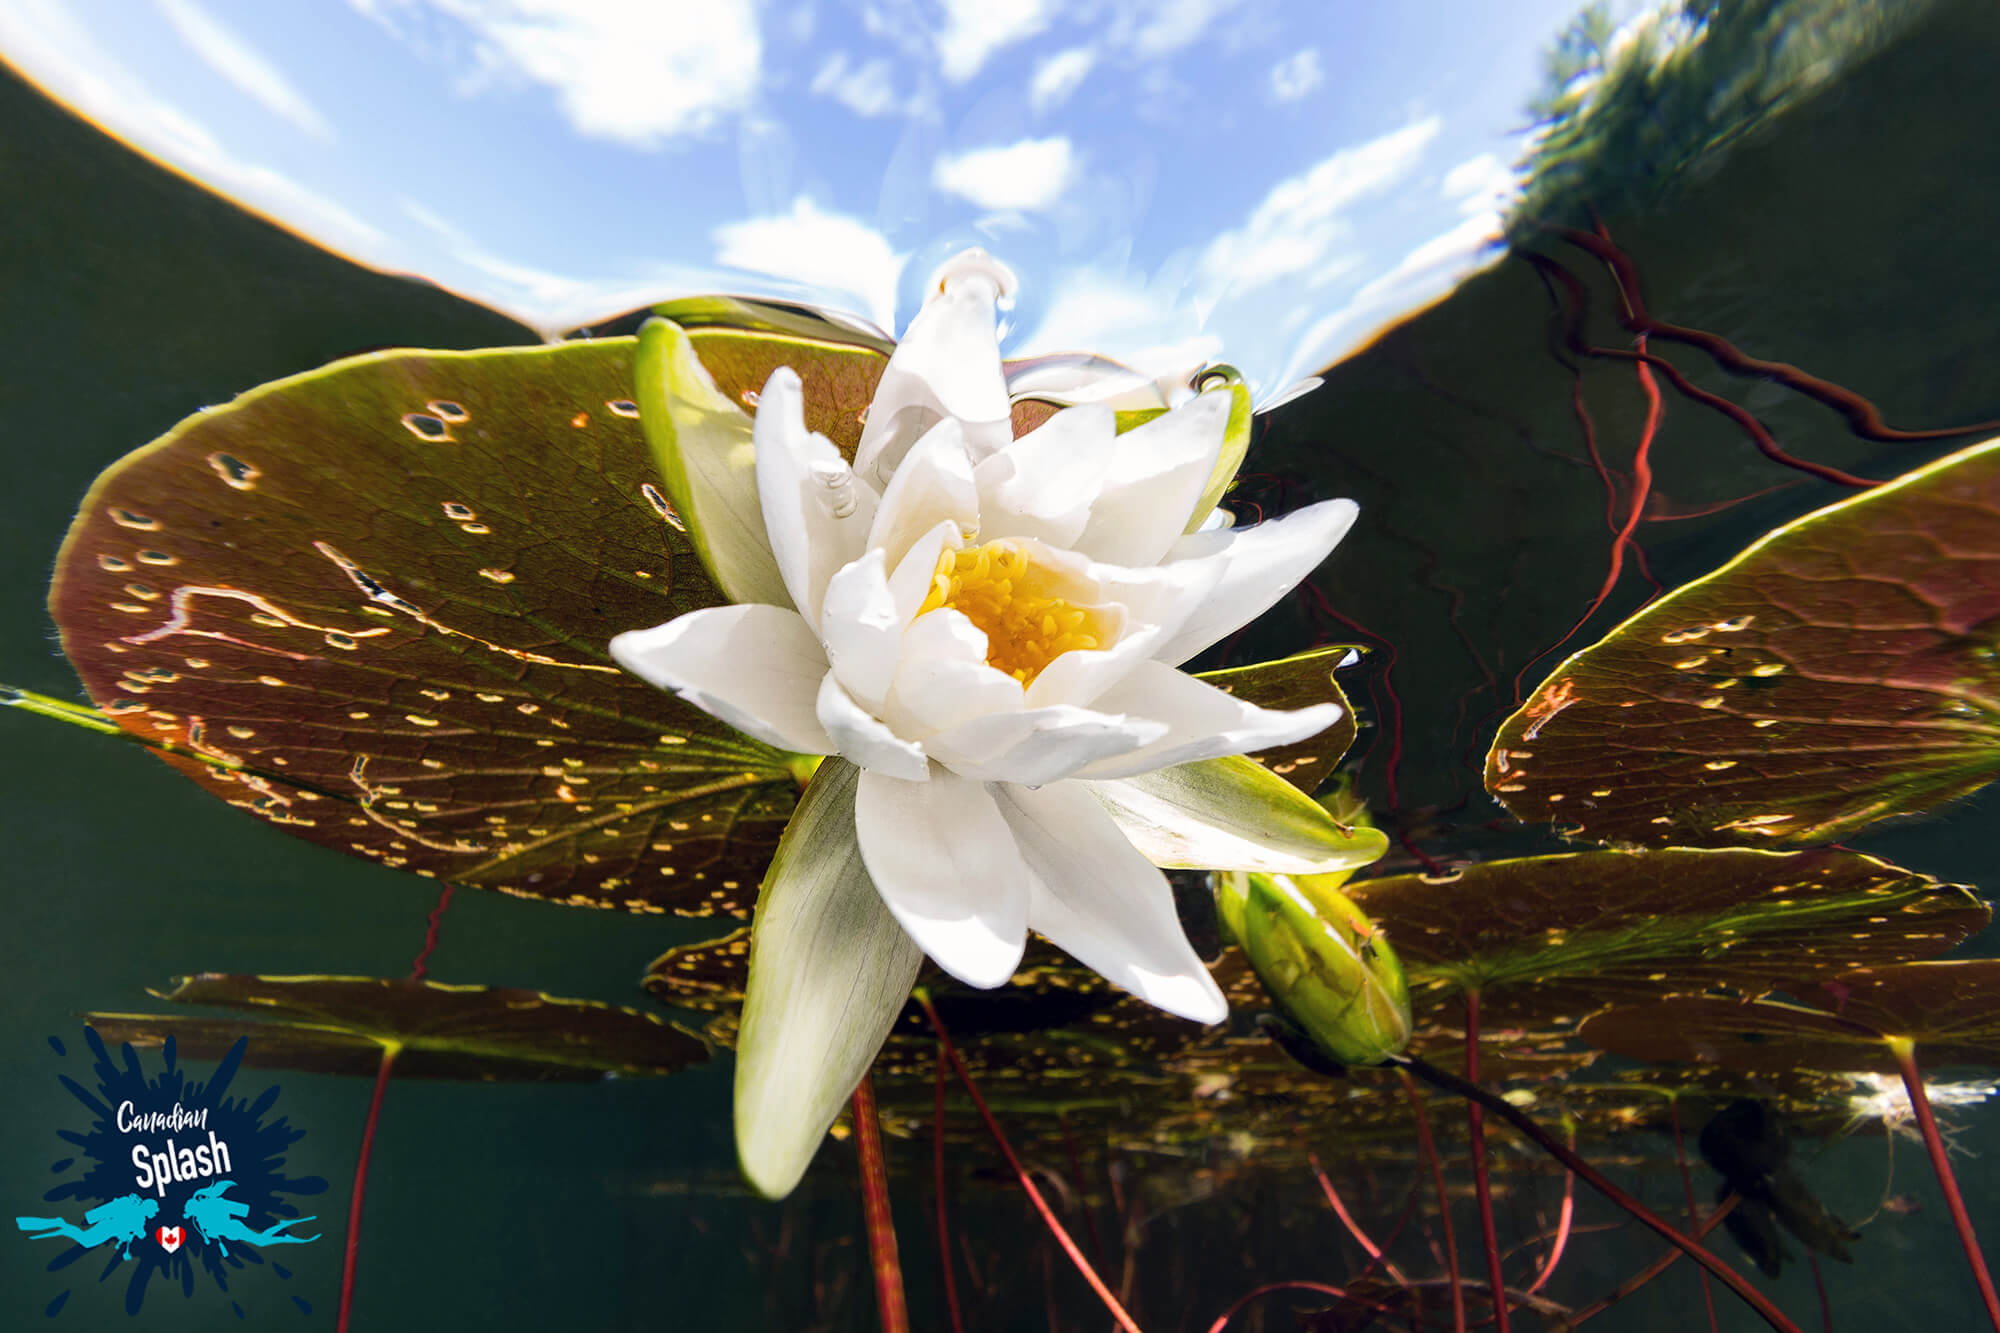 Water Lily At The Surface Of The Lake In Finlayson Point Provincial Park, Temagami, Ontario, Scuba Diving Canada